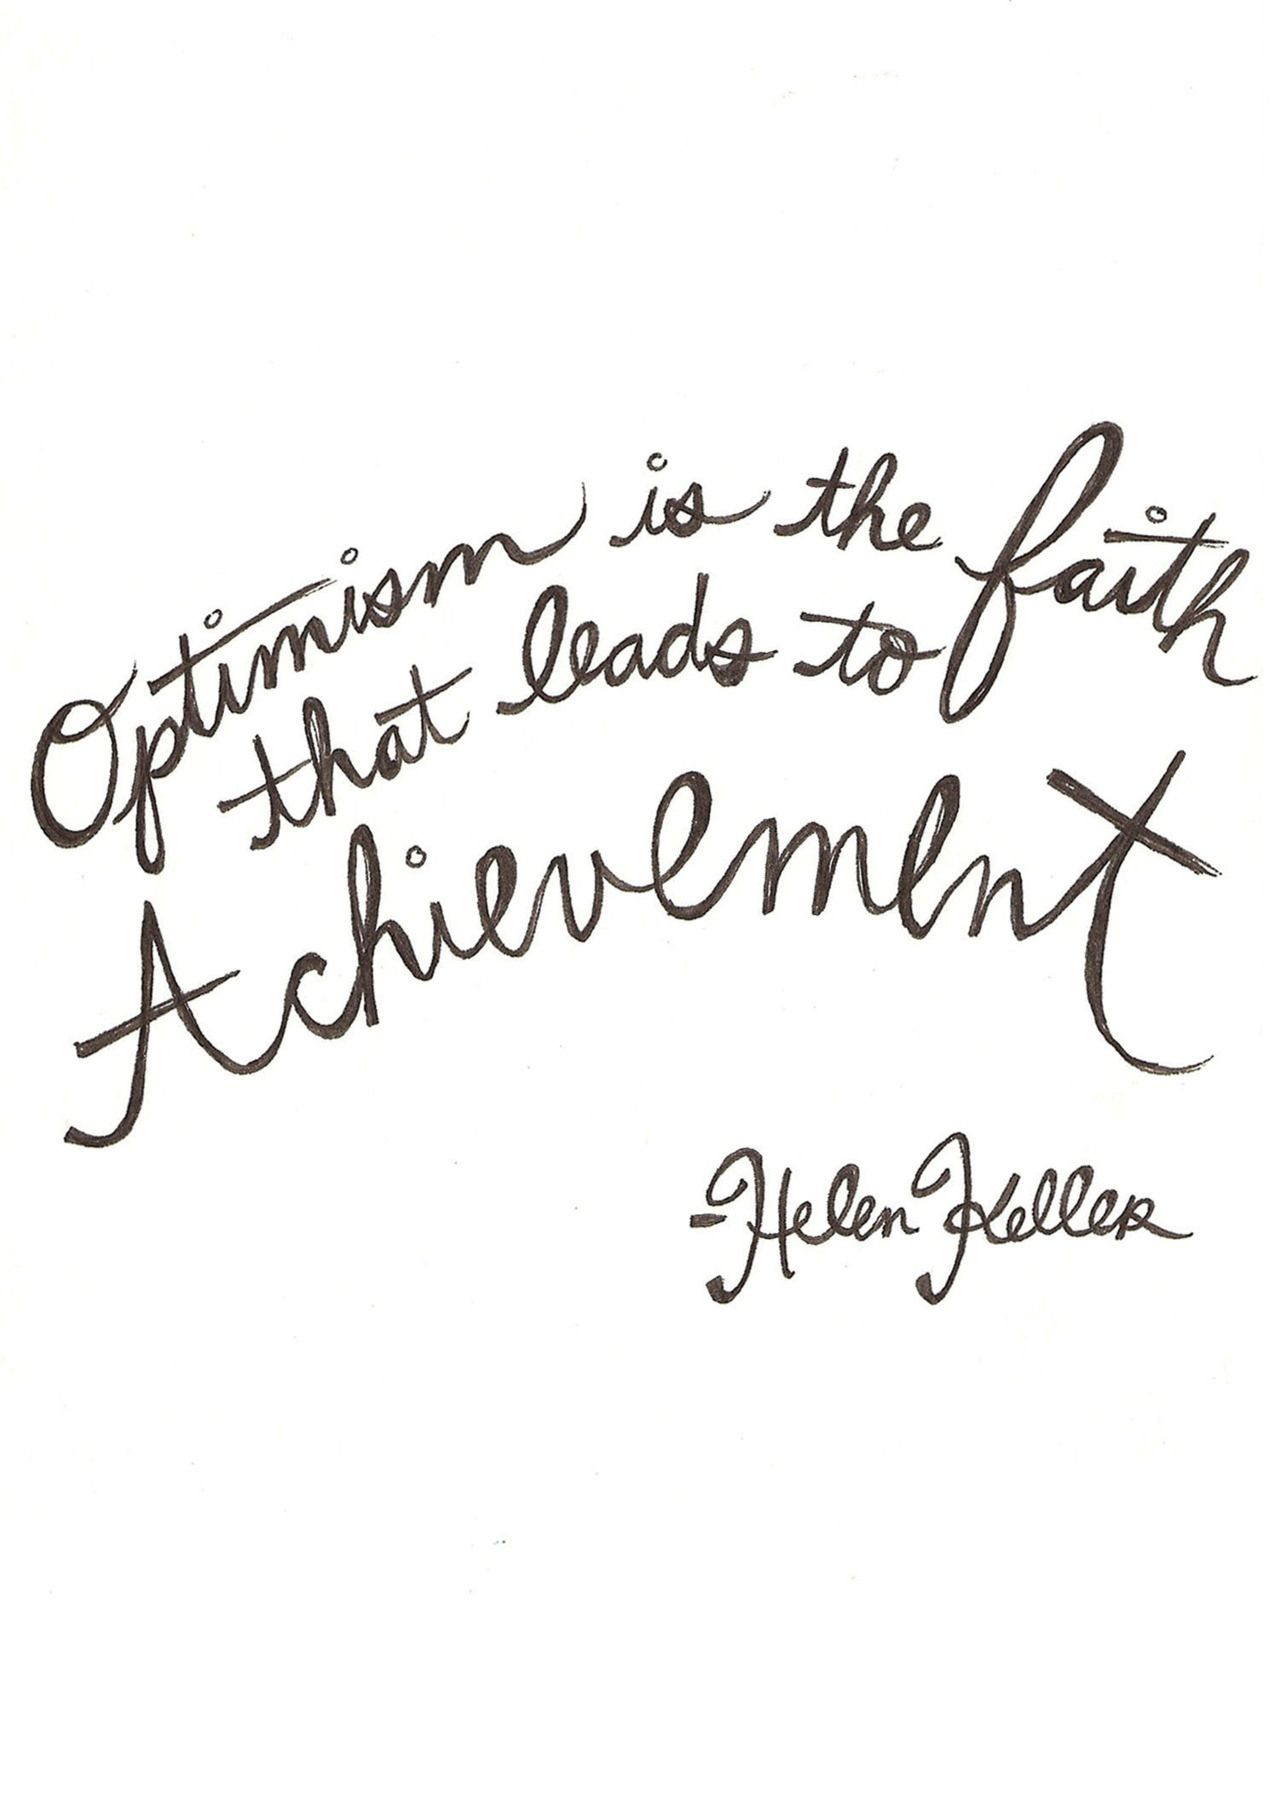 Quotes About Optimism Find People To Work With That Have The Right Attitudedesigners